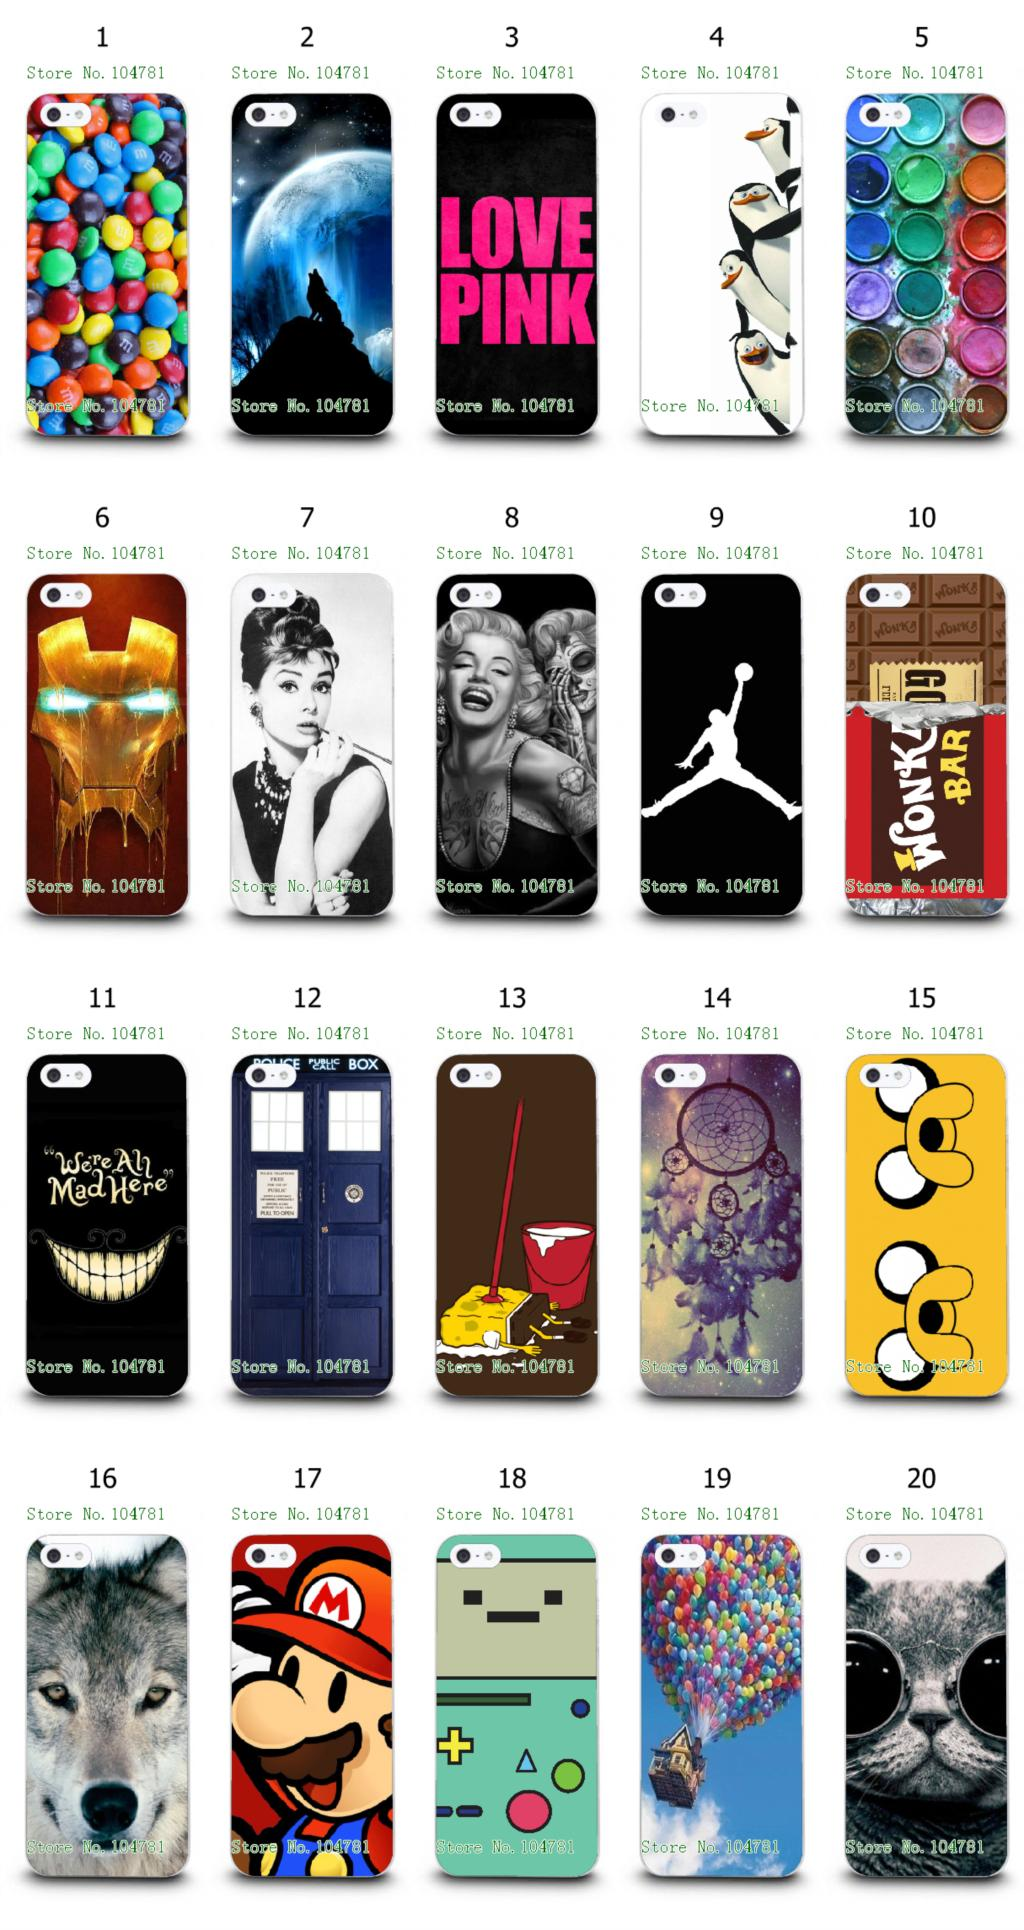 Mobile Phone Case Hot 1pc Love Pink Wolf Penguins Hybrid Design Protective White Hard Case For Iphone 4 4S Free Shipping(China (Mainland))